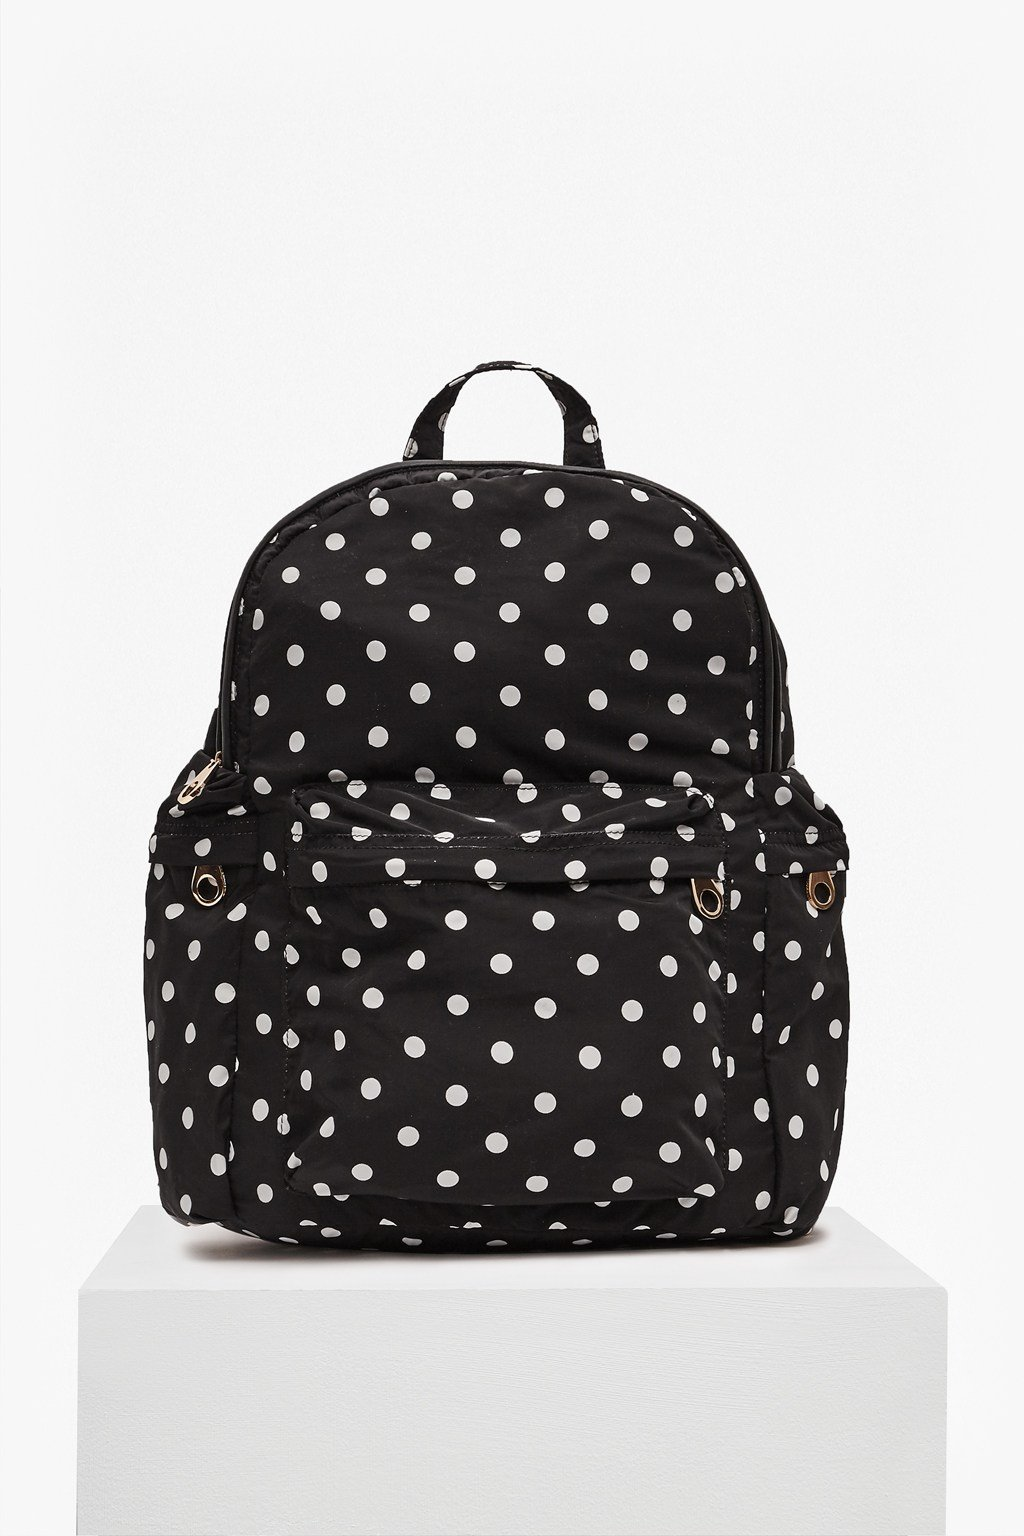 Tara Polka Dot Nylon Backpack